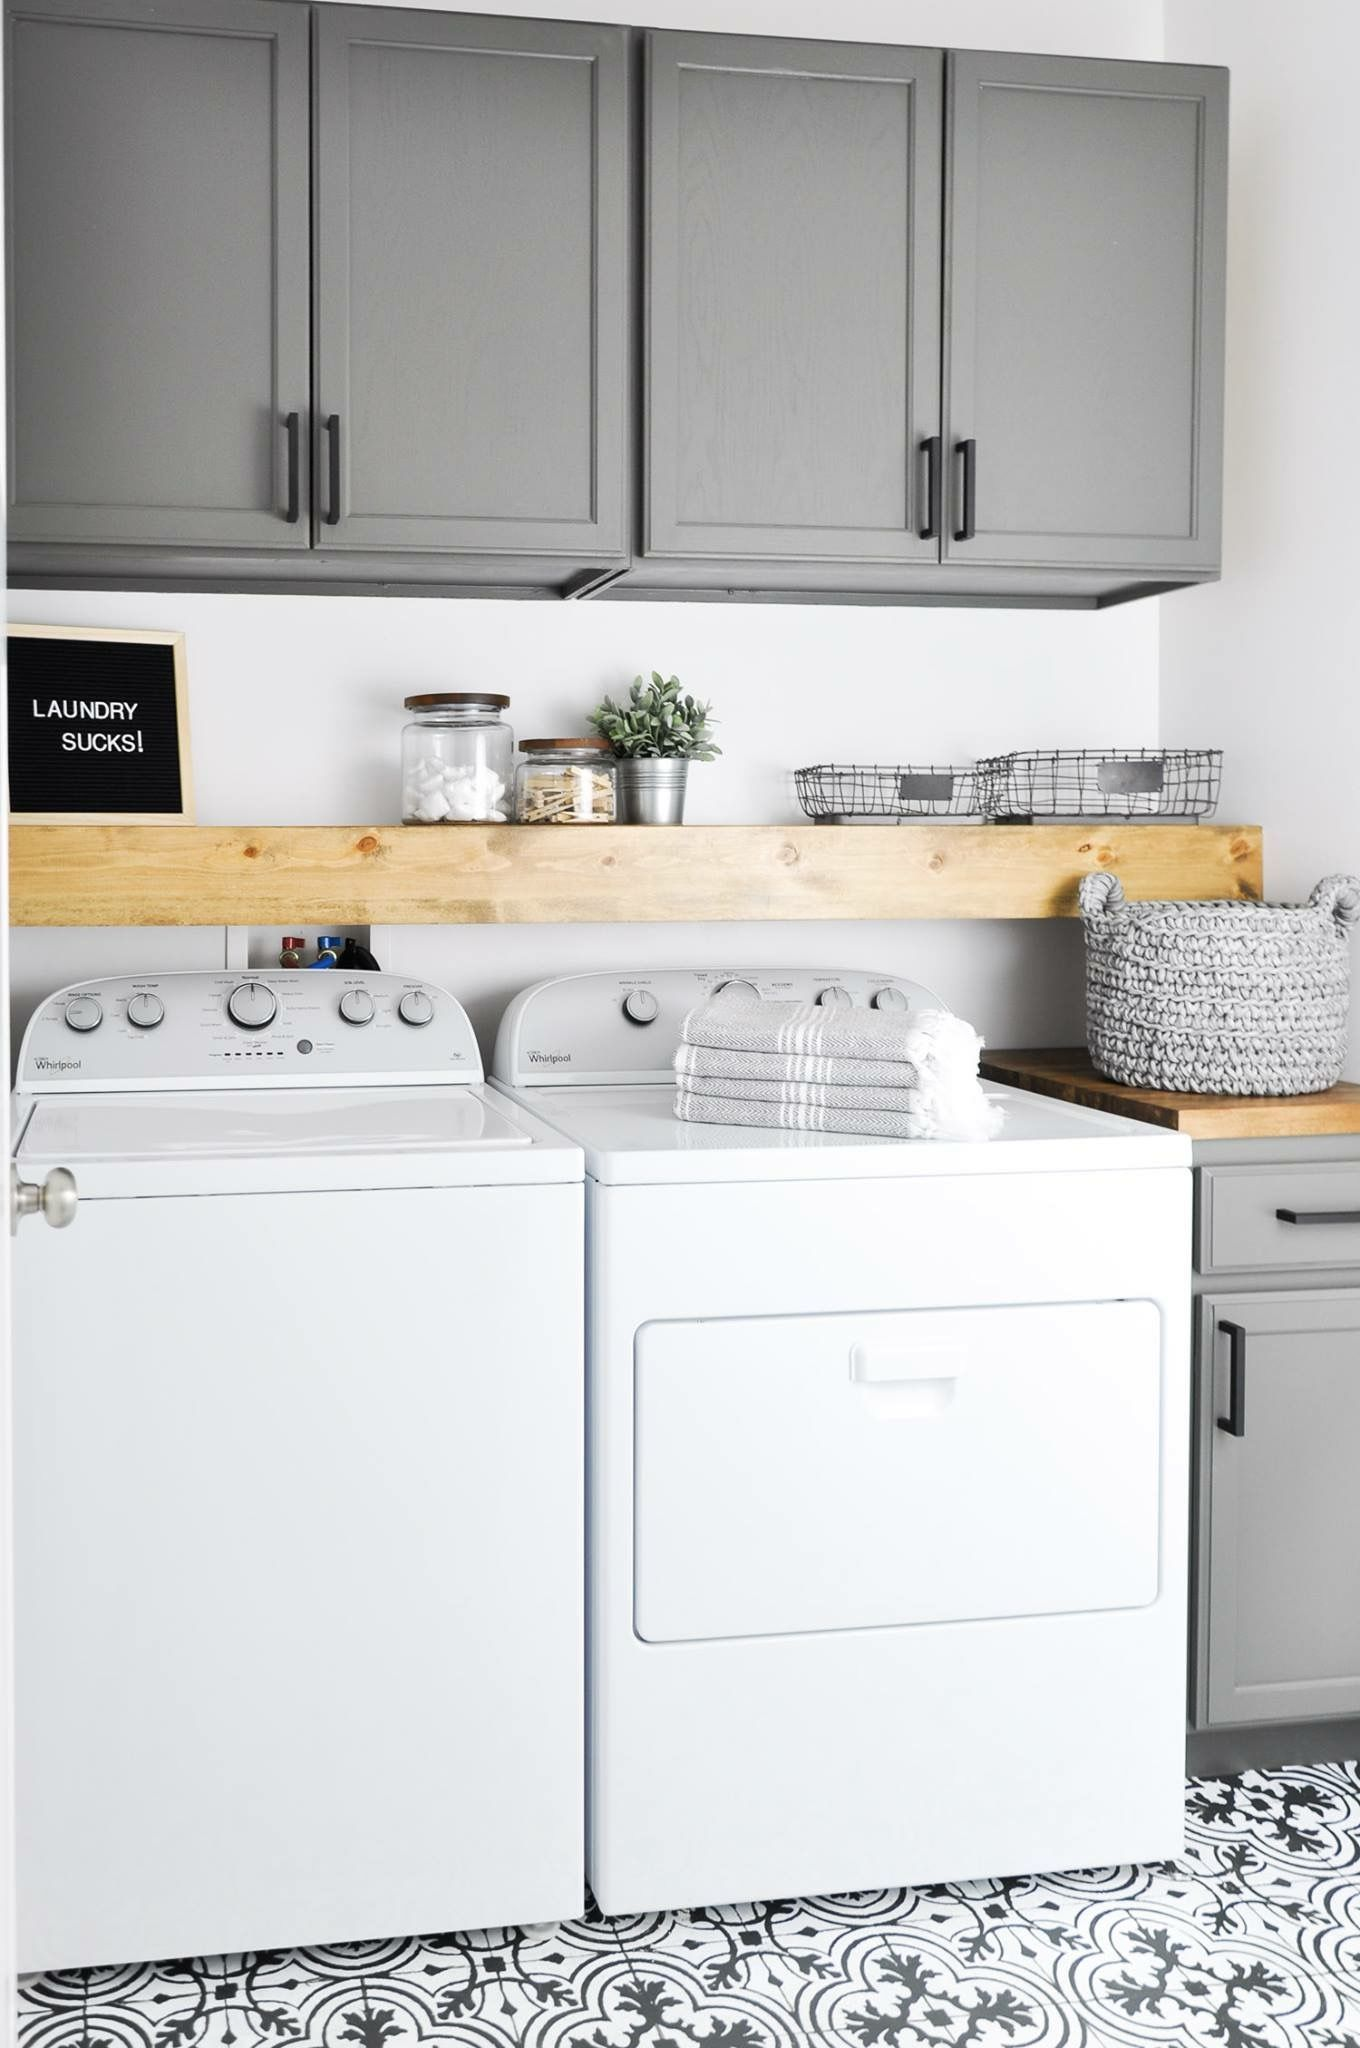 Basement Laundry Room Unfinished Basement Laundry Room Ideas, Basement Laundry